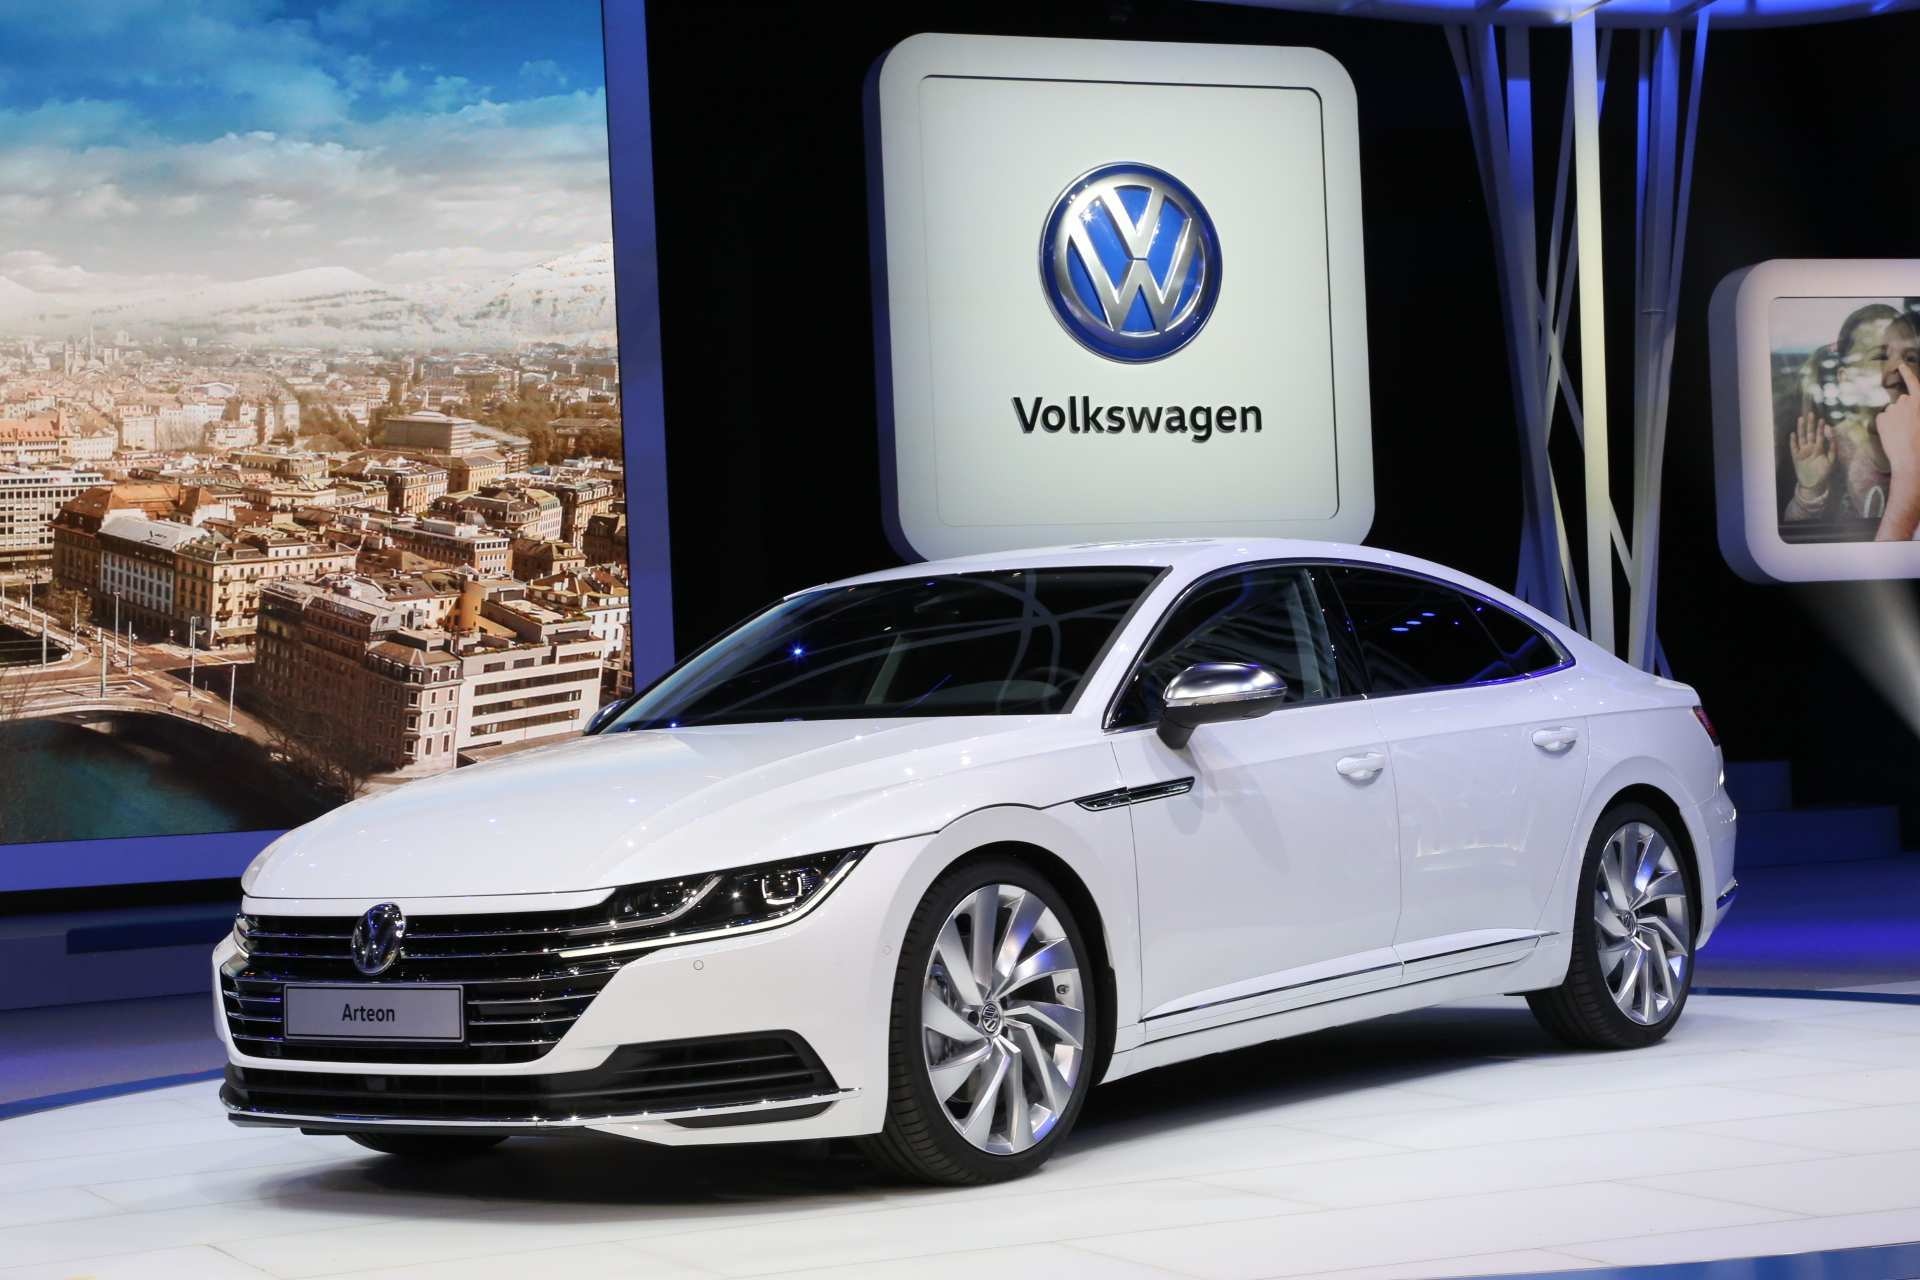 94 Best Review Arteon Vw 2019 Prices for Arteon Vw 2019